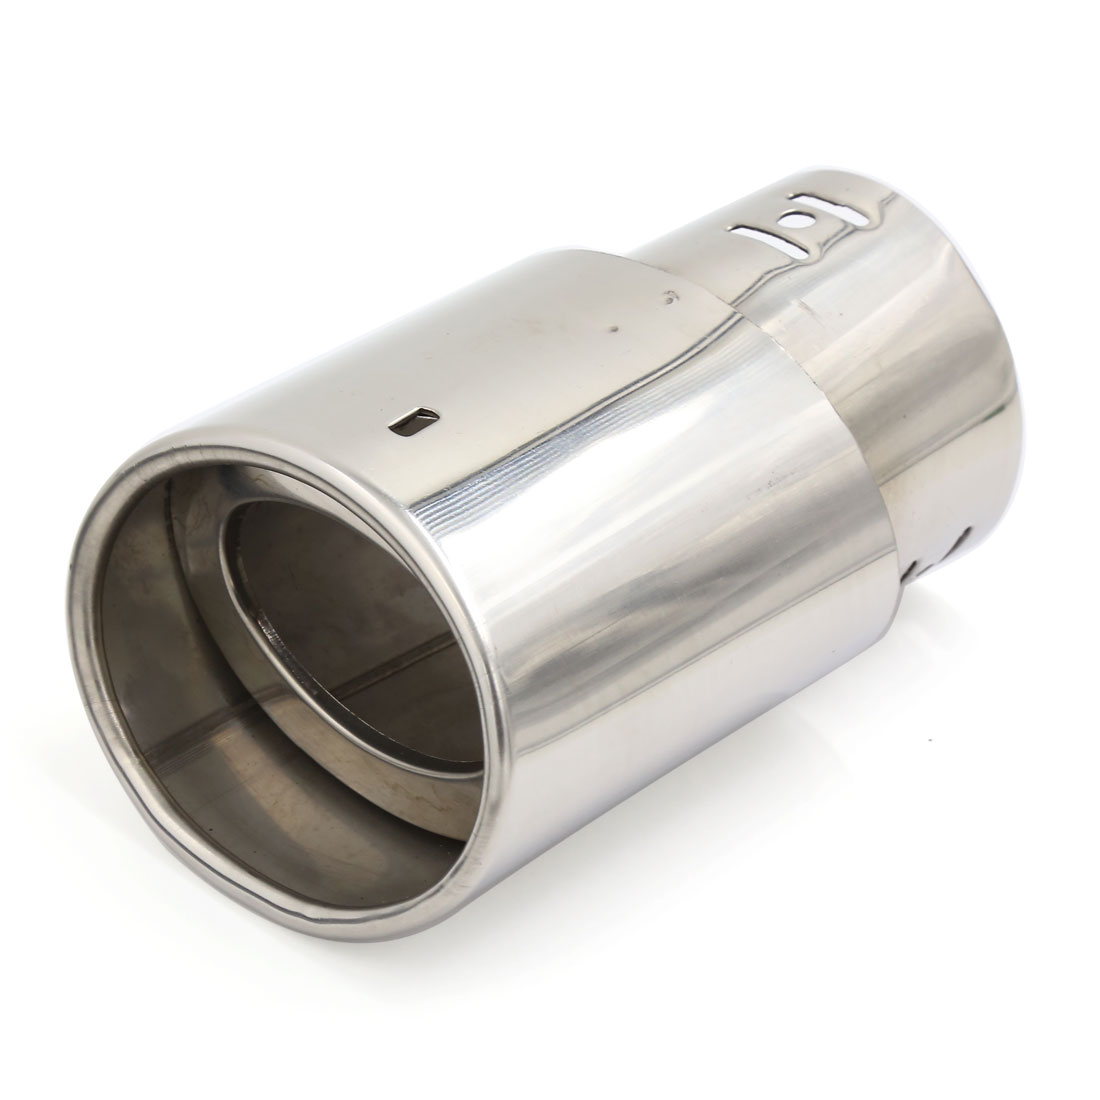 Automotive Stainless Steel Oval Slant Tip Muffler Tail Pipe 72mm Inlet Diameter